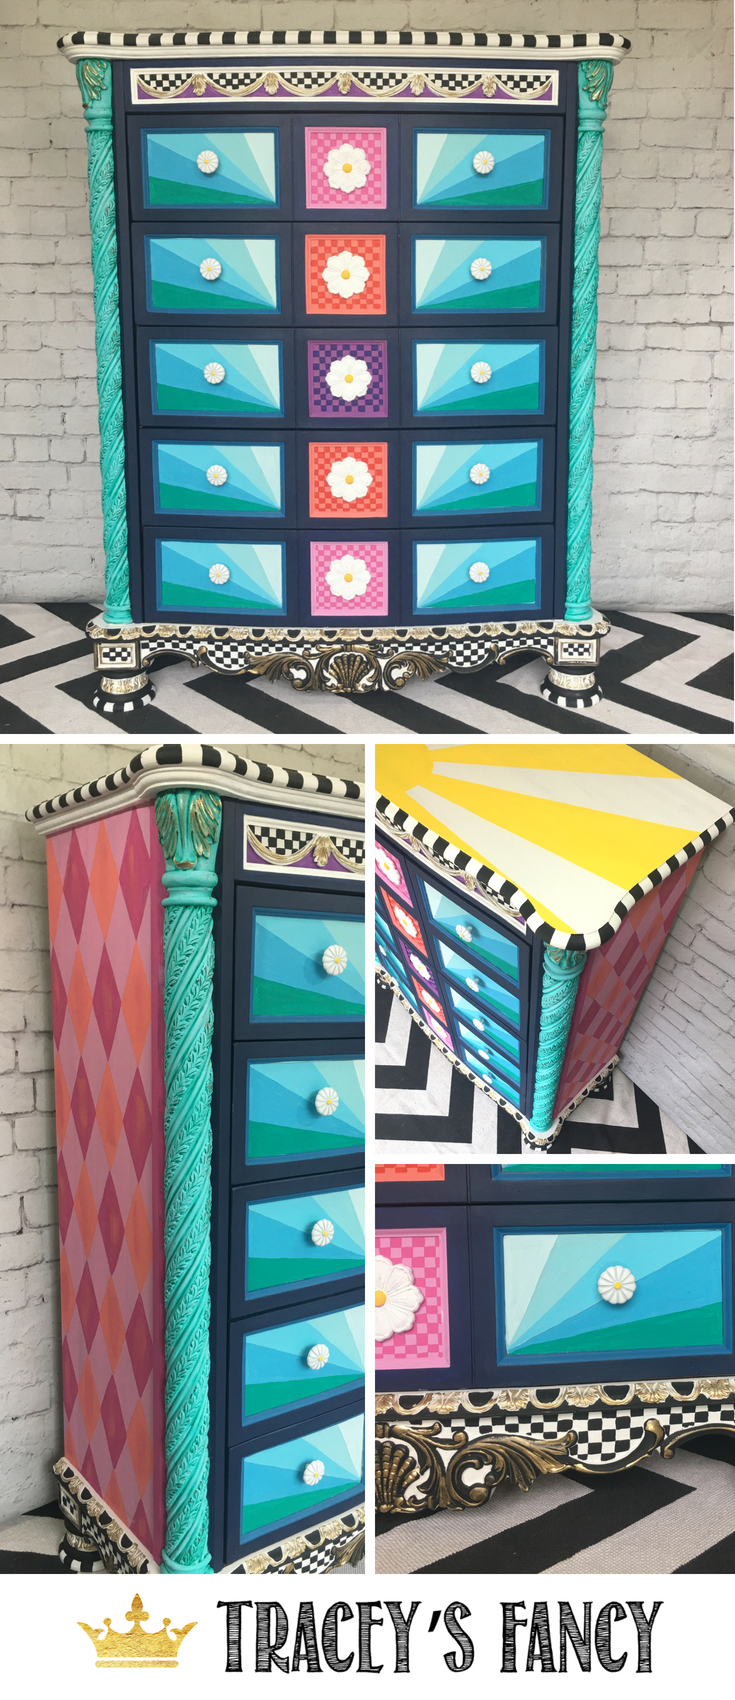 Whimsical Dresser by Tracey's Fancy Painted Furniture Ideas Colorful Furniture Ideas #furnituremakeover #whimsical #furnituredesign #furniture